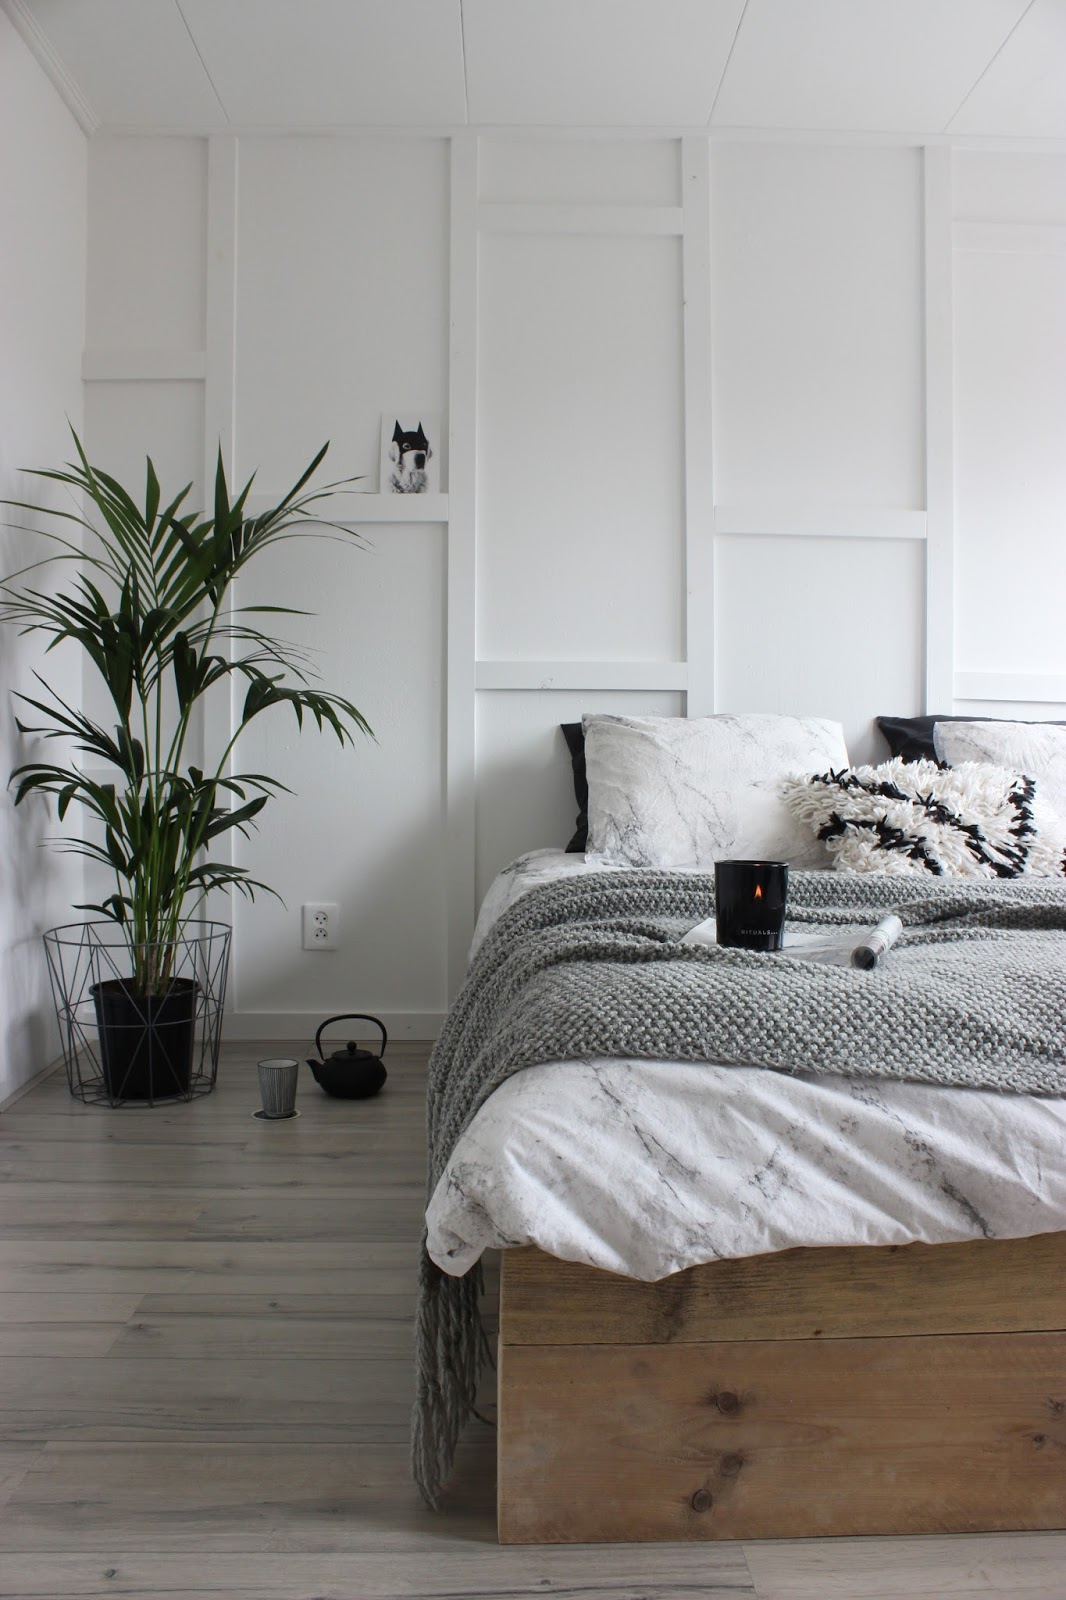 This simple, minimalist bedroom has a modern Scandinavian look with its neutral colors, cozy textures, and wall trim details.